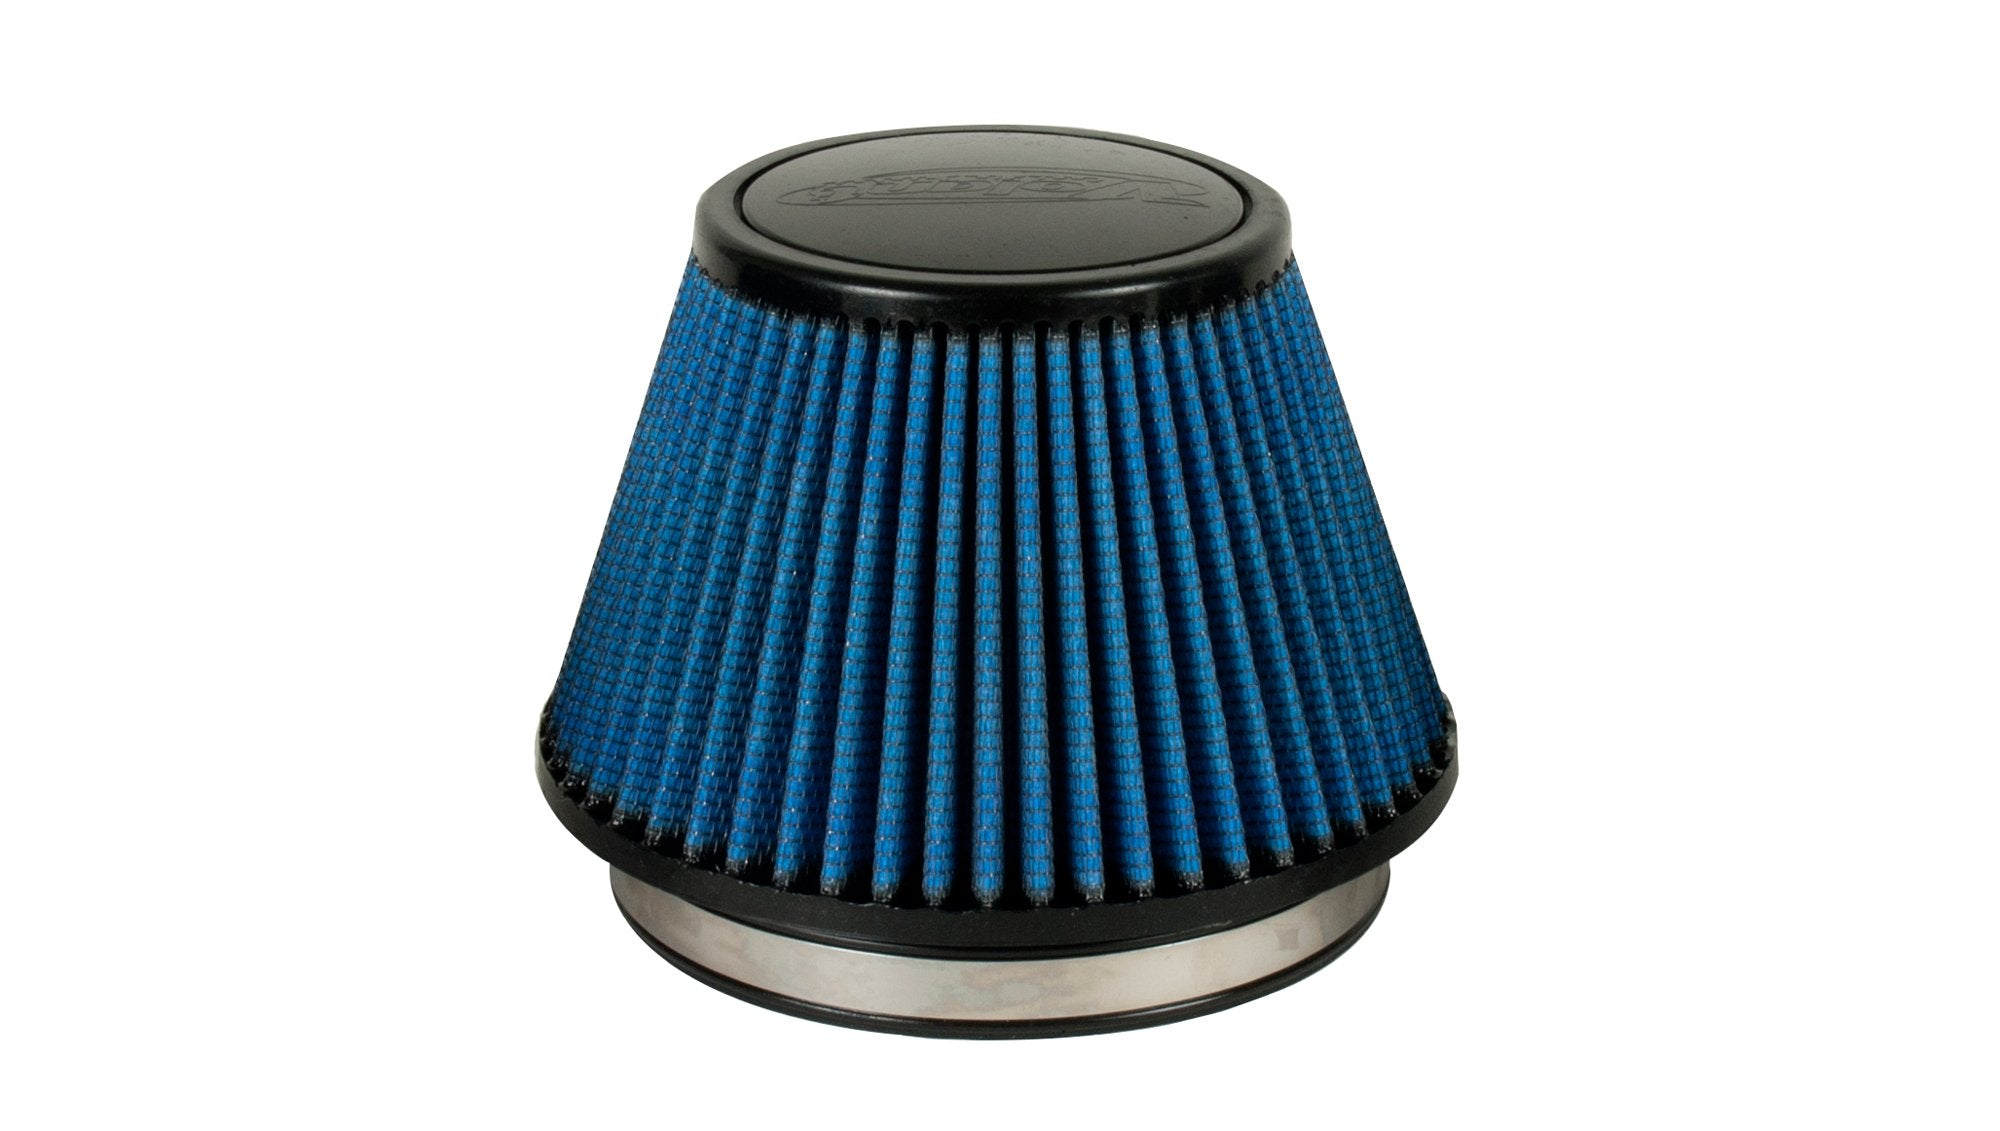 2005-2007 Nissan Frontier, Xterra, Pathfinder Oiled Air Intake Air Filter - 5120